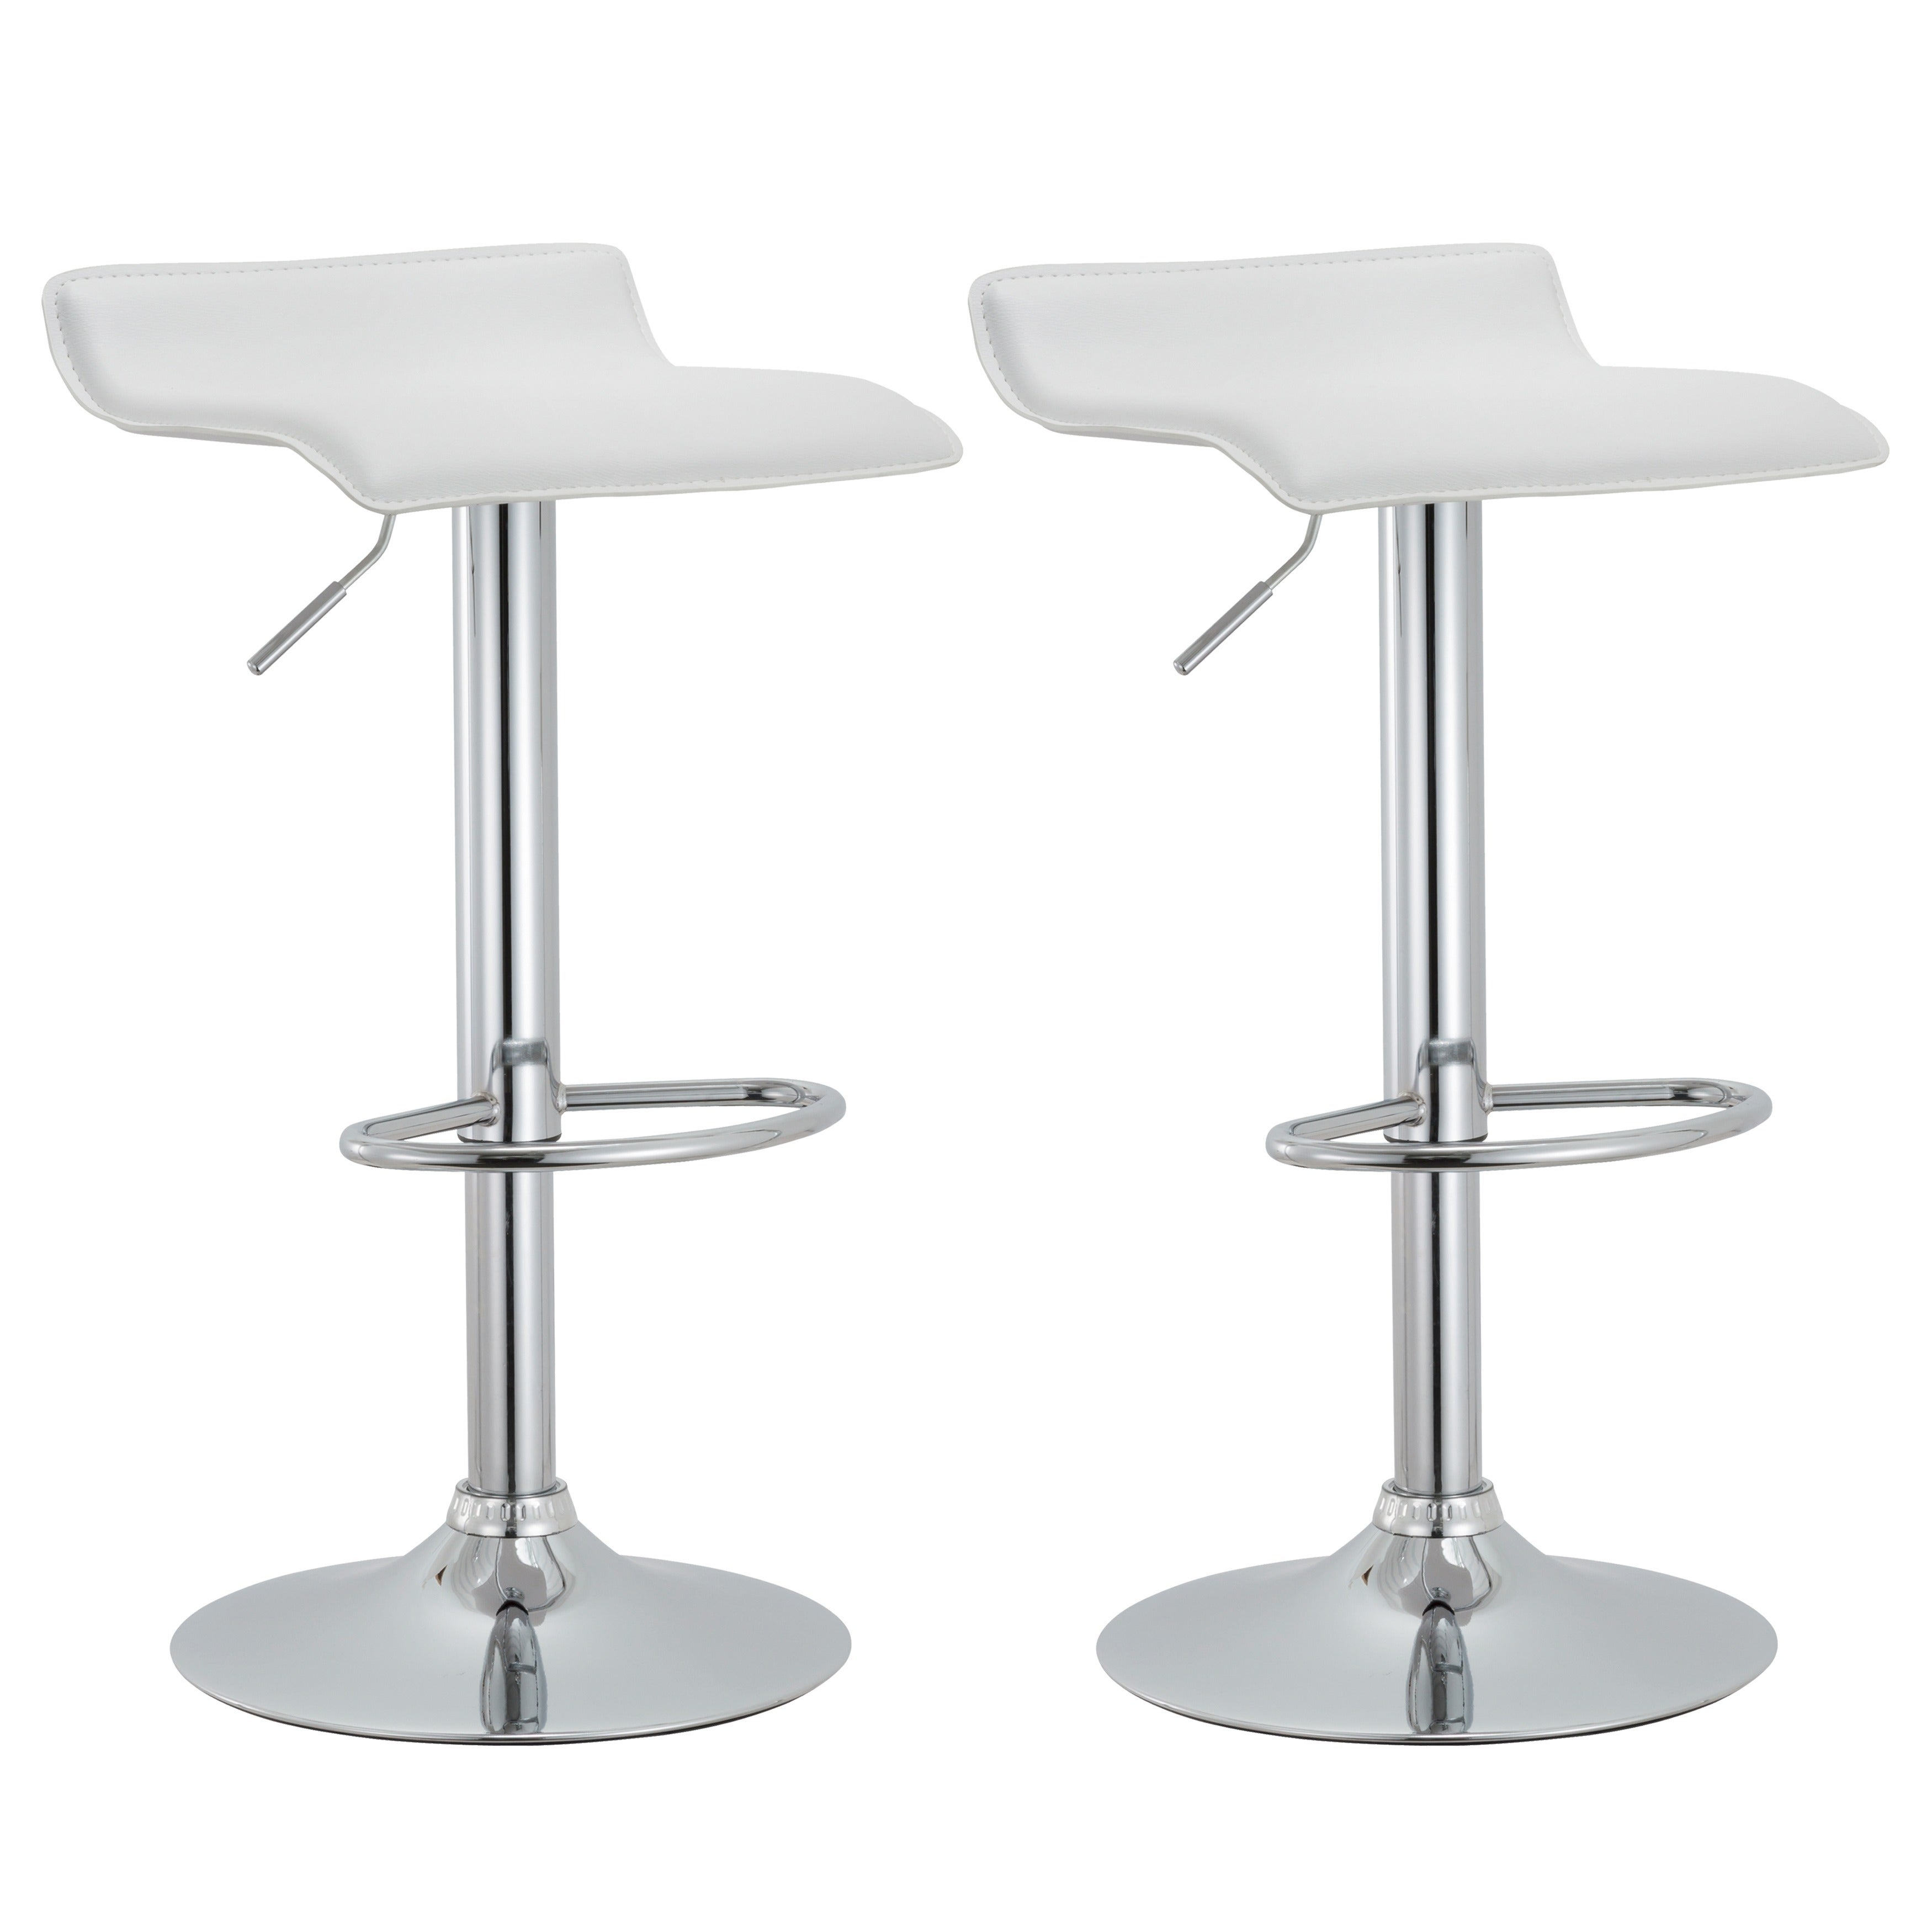 Shop Modern Adjustable Bar Stools Set Of 2 23 5 31 5 H On